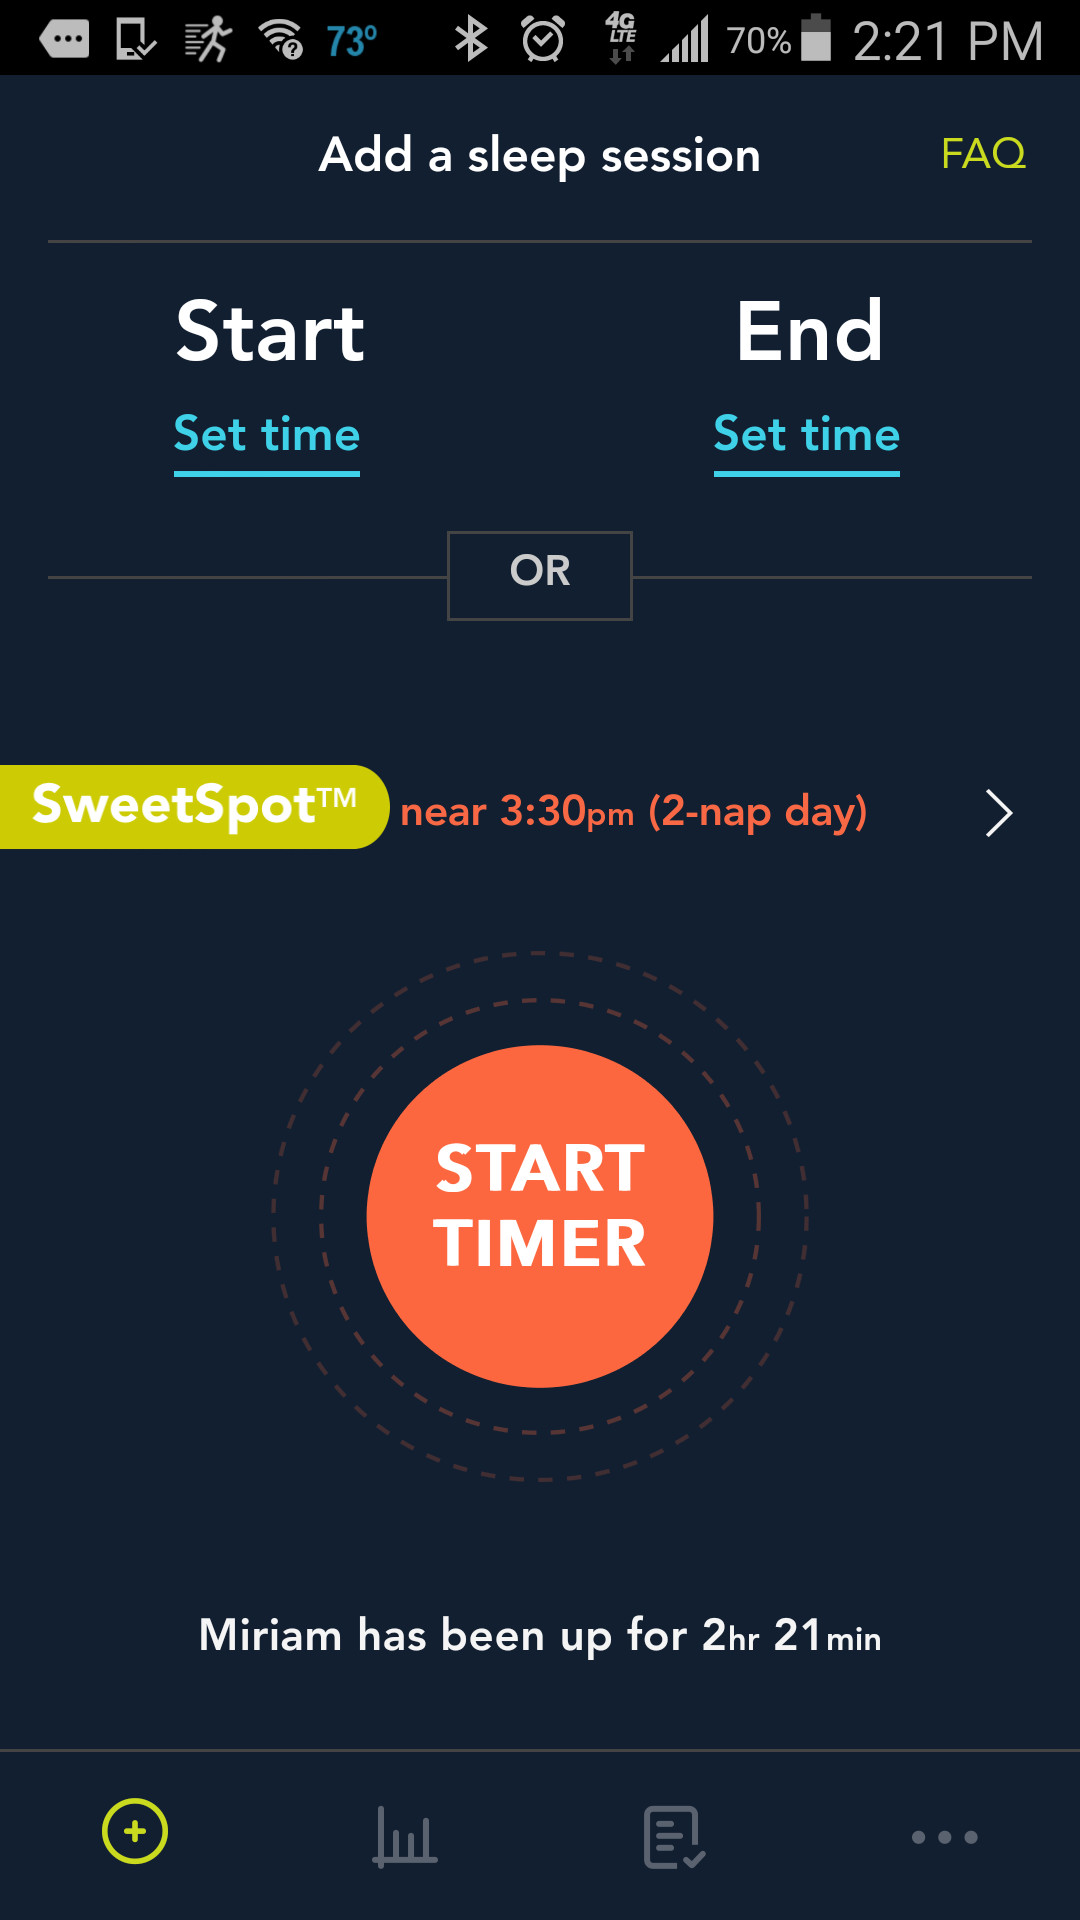 The SweetSpot feature tells you when your child will likely be ready to sleep based on age, time awake, and number of naps per day.